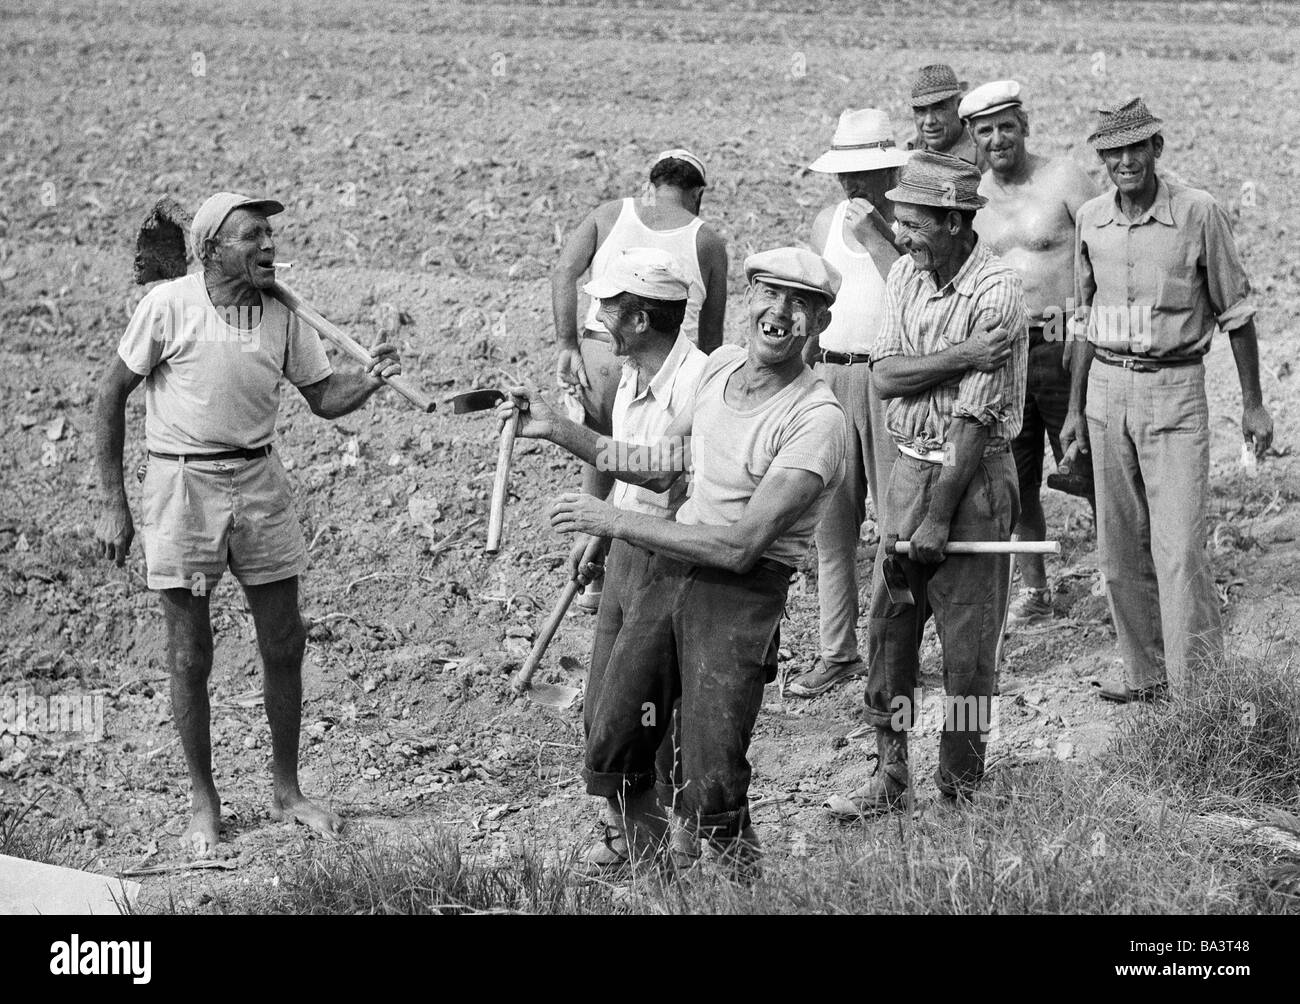 Seventies, black and white photo, agrarian economy, field work, farm workers in the Huerta in the province of Valencia - Stock Image